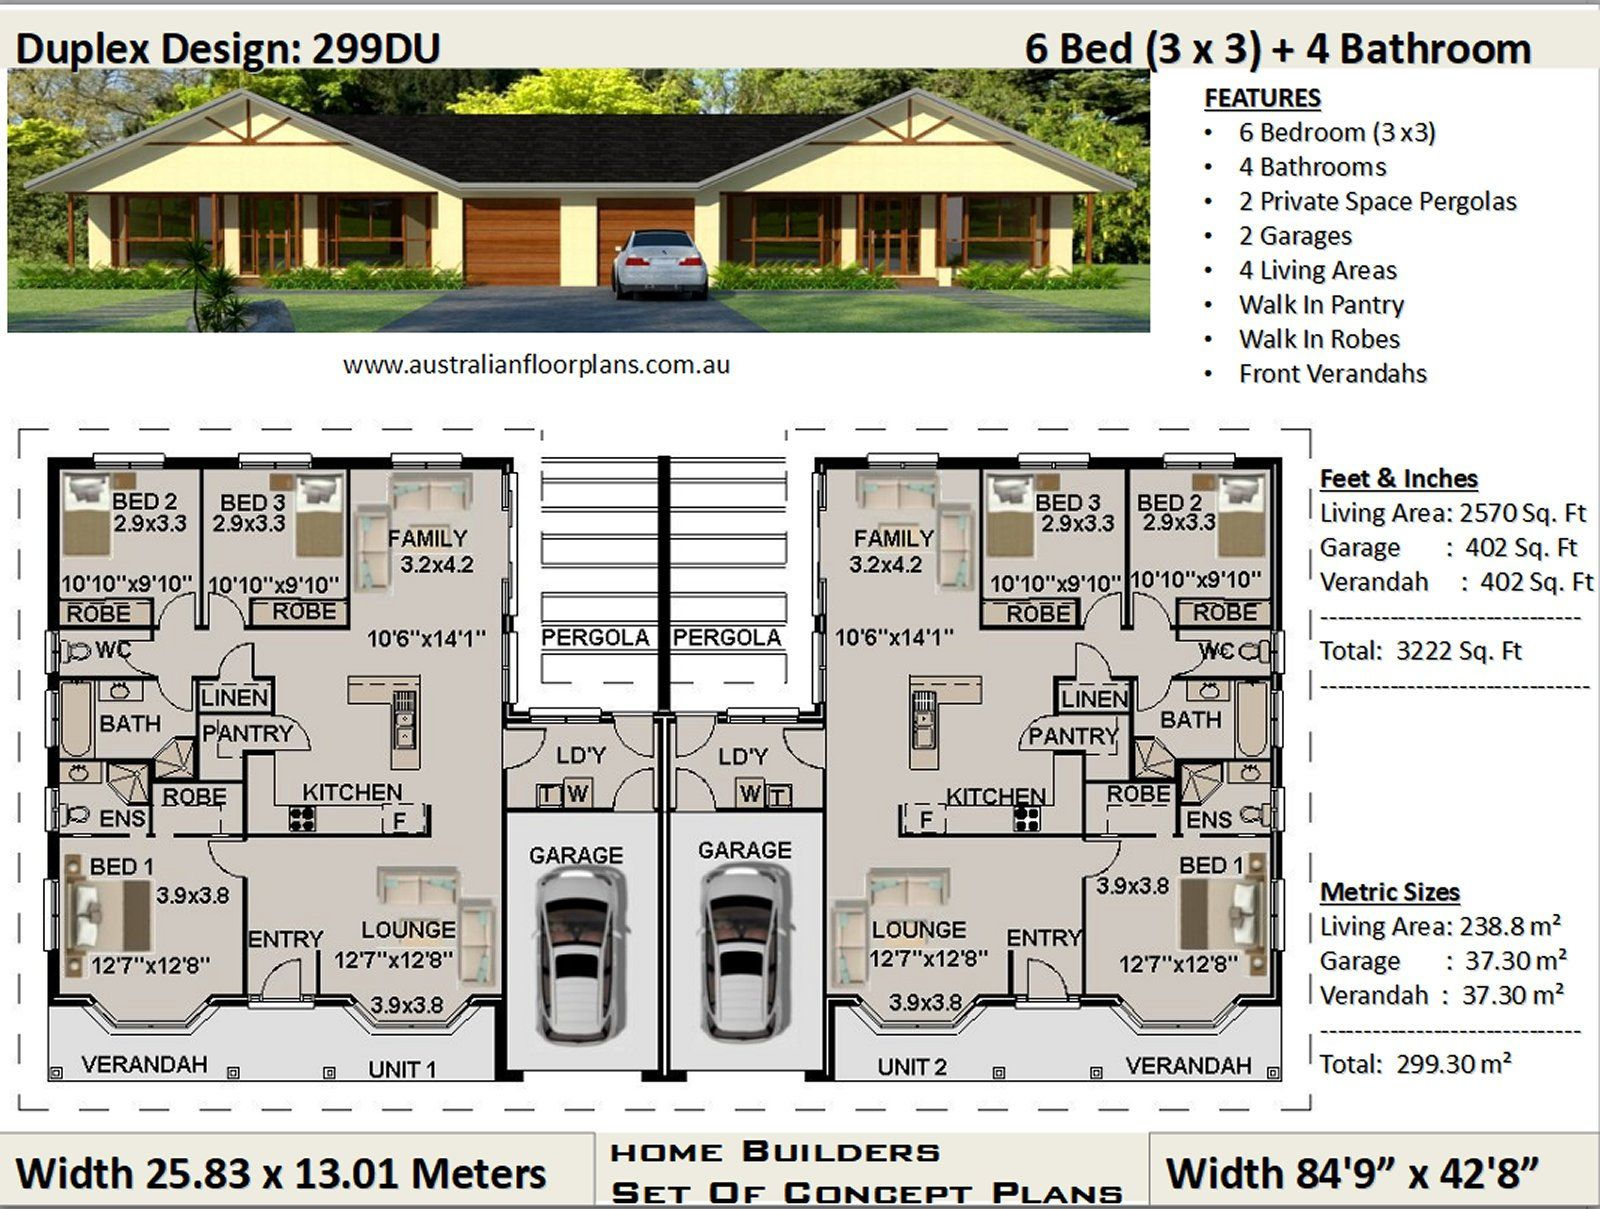 3222 Sq Feet 299 30 M2 Duplex House Plans 6 Bedrooms Etsy Duplex Design Duplex Floor Plans Duplex Plans